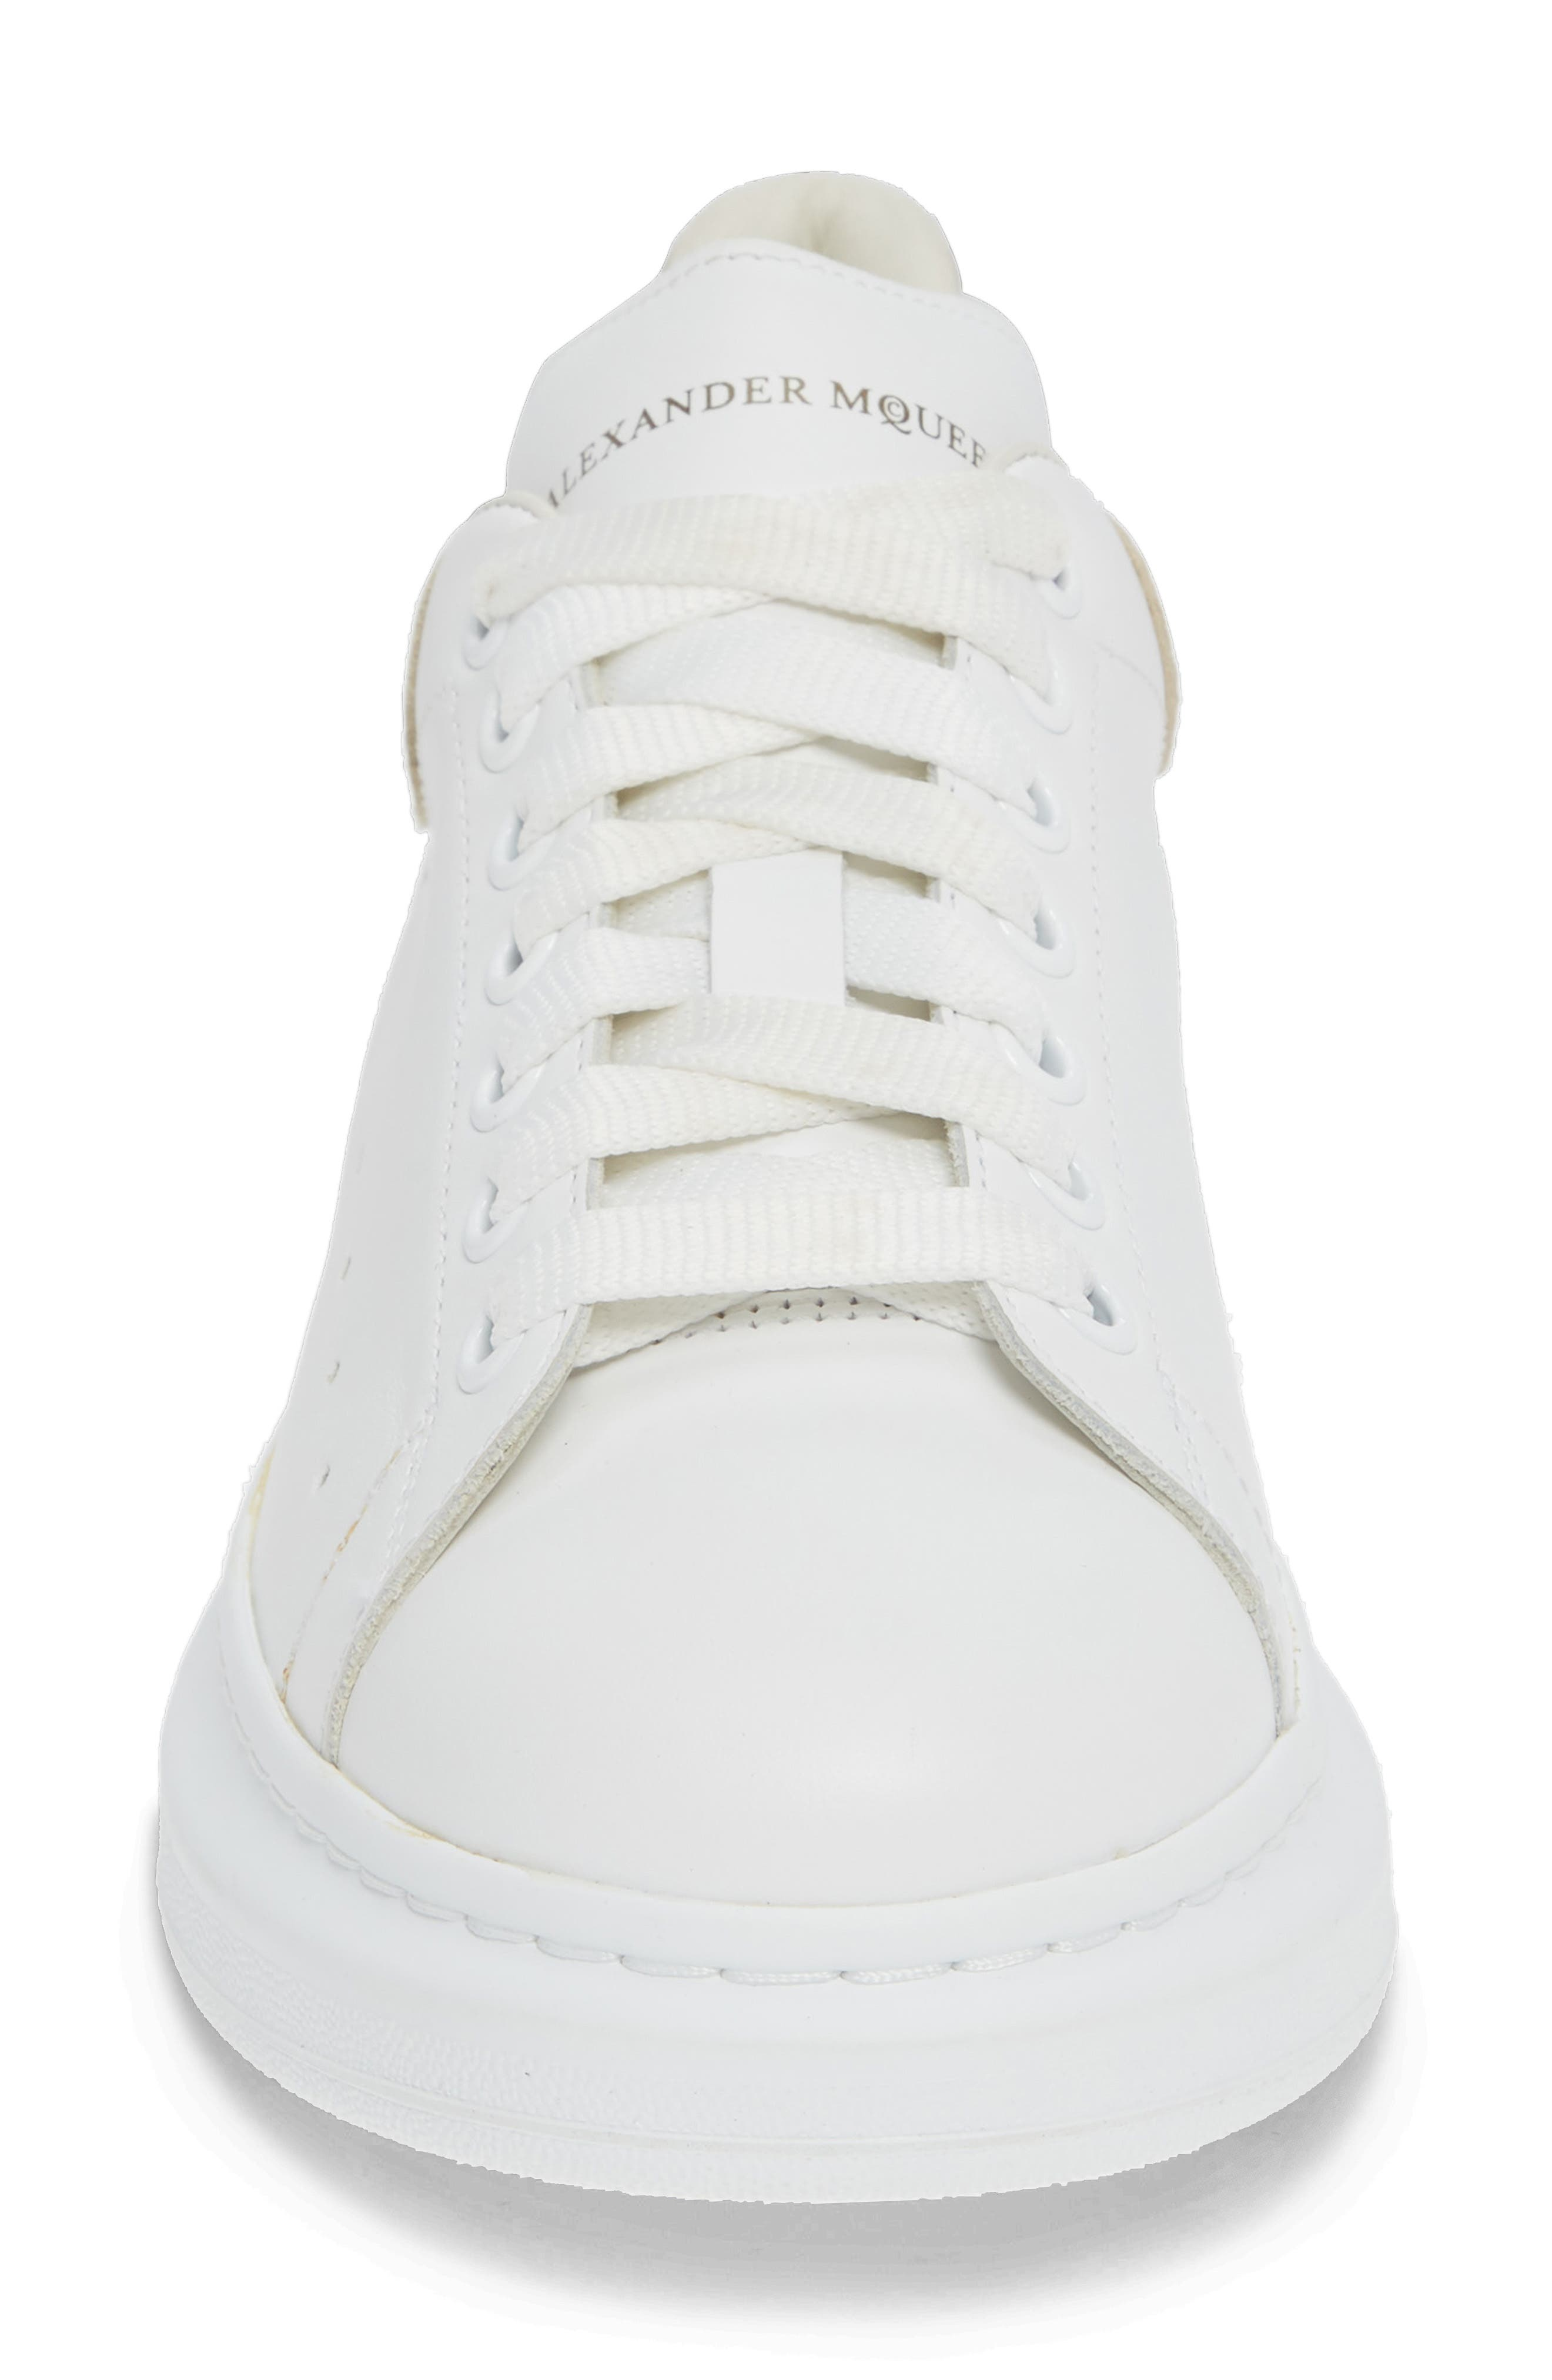 ALEXANDER MCQUEEN, Oversized Sneaker, Alternate thumbnail 4, color, WHITE/ GOLD